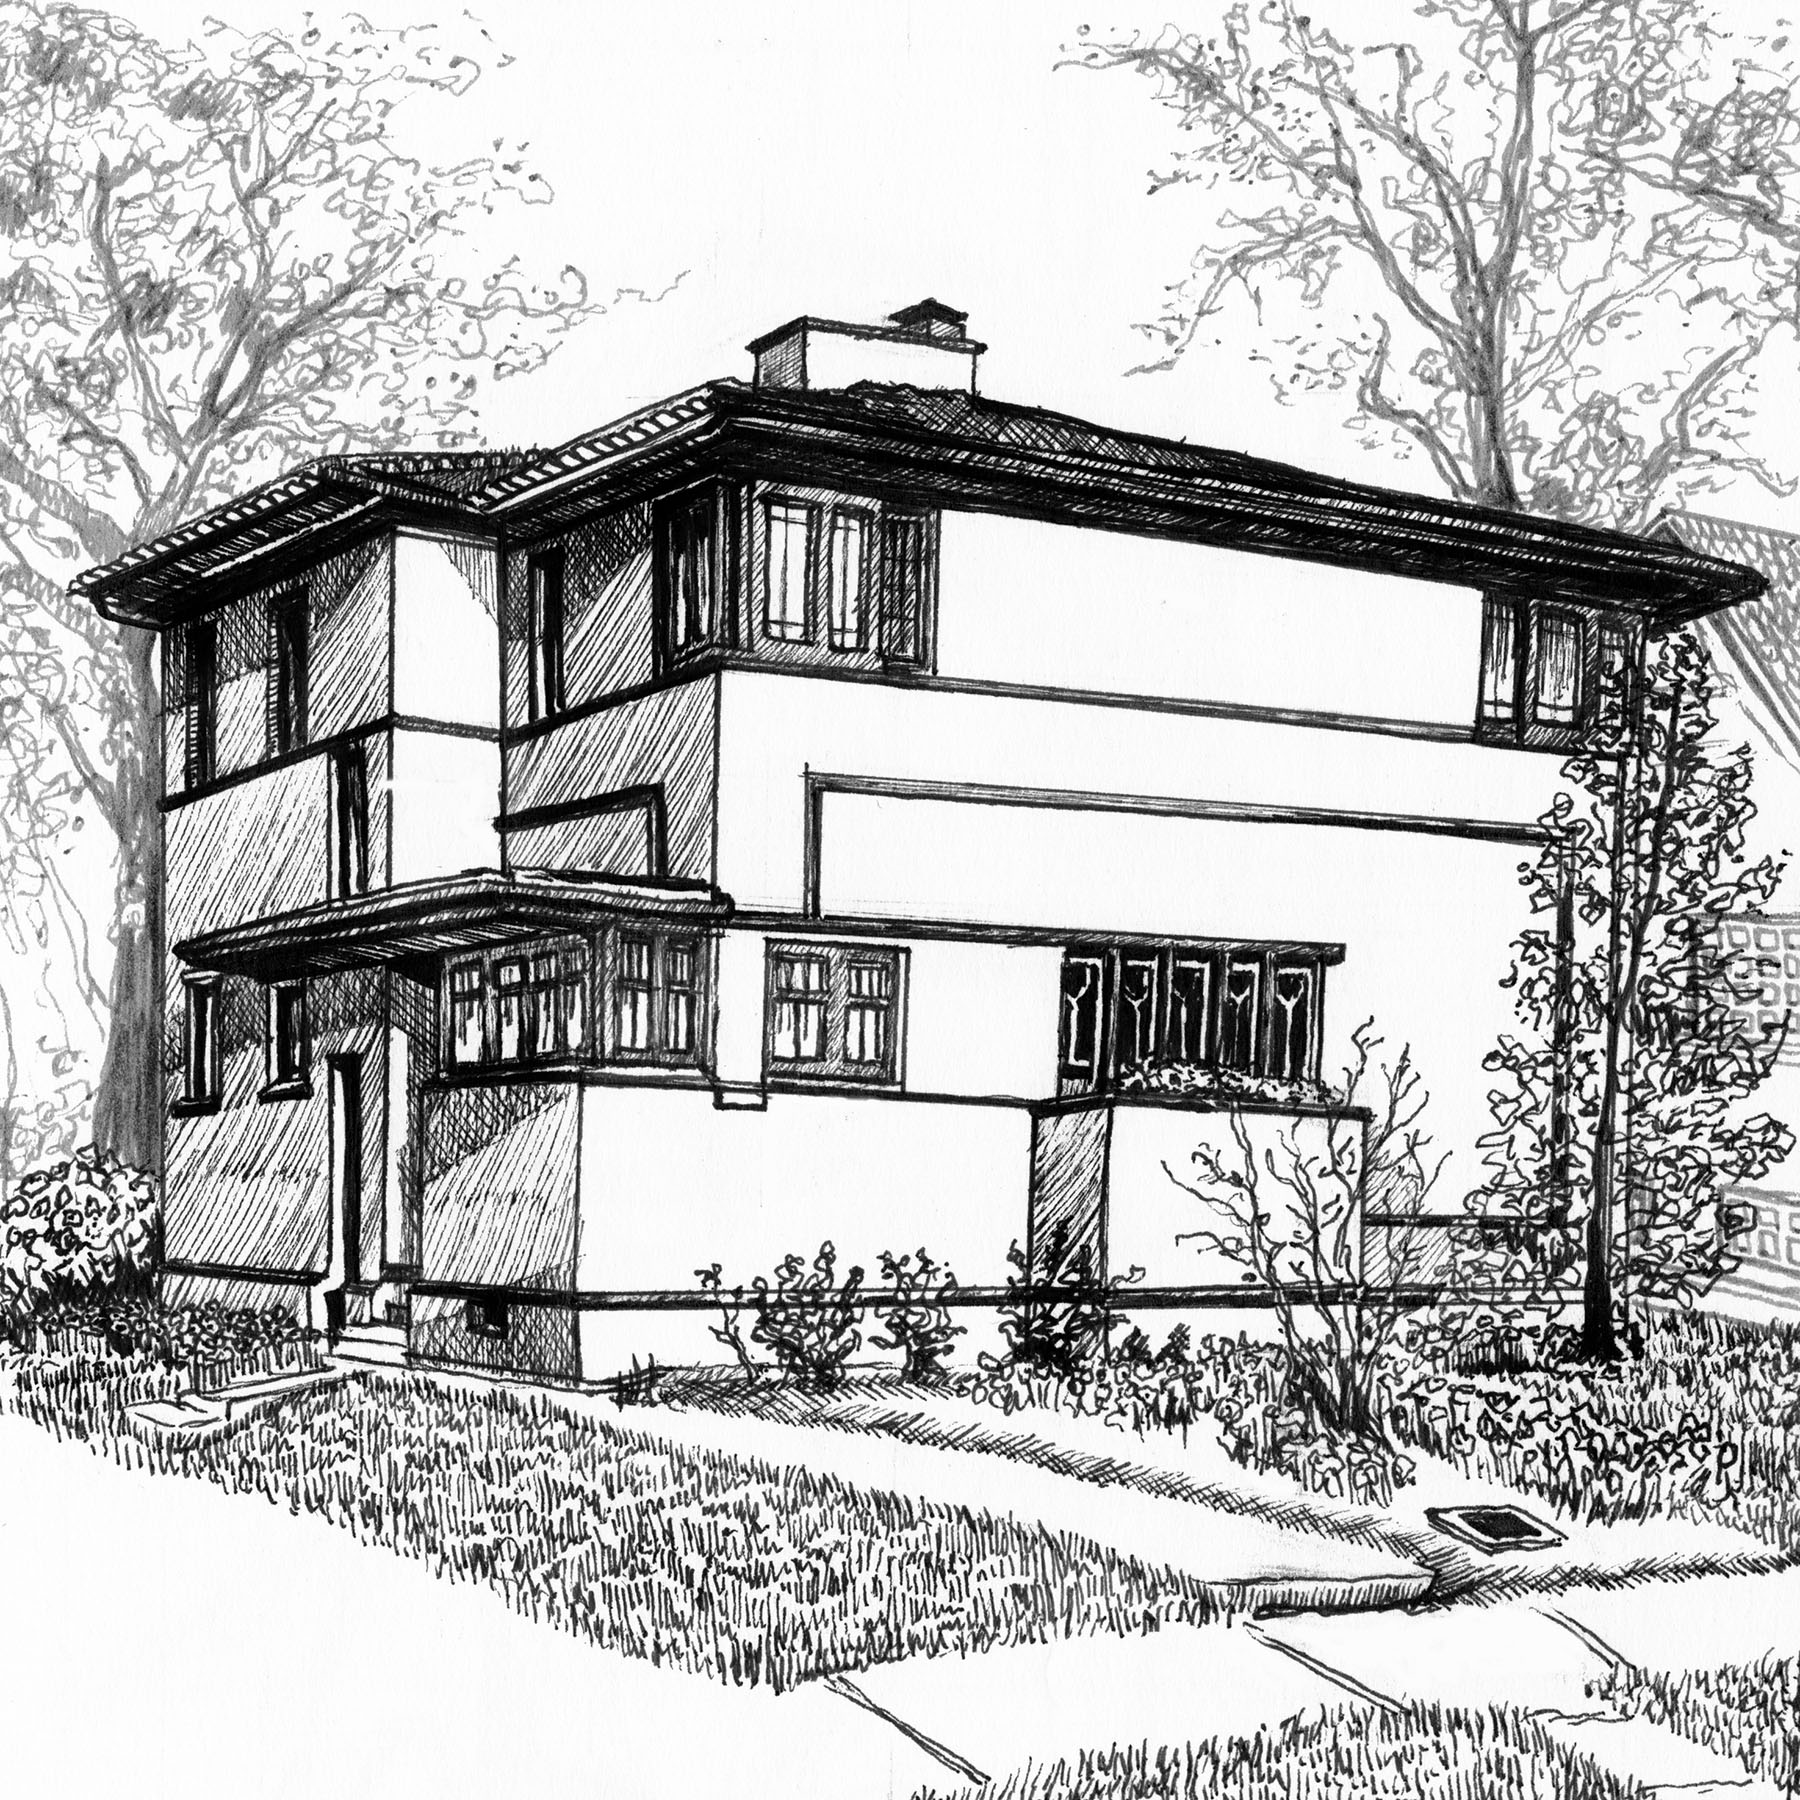 Home Histories: American System-Built Homes – South Side Weekly on unusual home designs, taliesin home designs, stylish eve home designs, carter home designs, rutenberg home designs, usonian home designs, popular home designs, john lautner home designs, single story home designs, cliff may home designs, wisconsin home designs, art deco home designs, nigerian home designs, 2015 home designs, michael graves home designs, affordable home designs, architect home designs, new england home designs, raymond loewy home designs, craftsman style home designs,